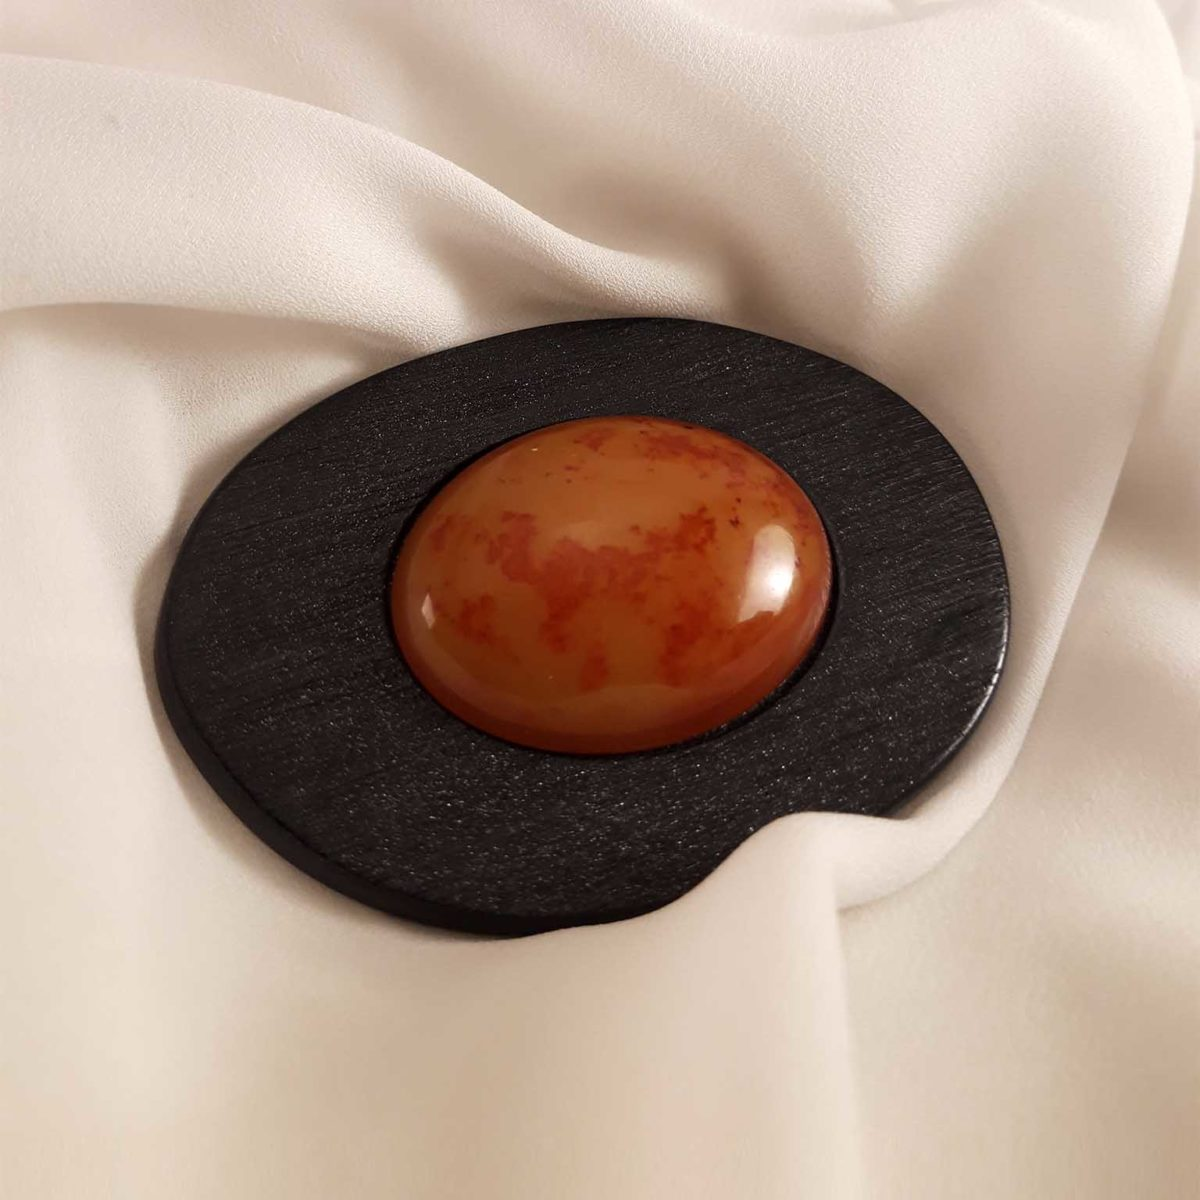 Wooden Chest Needle With An Orange Stone